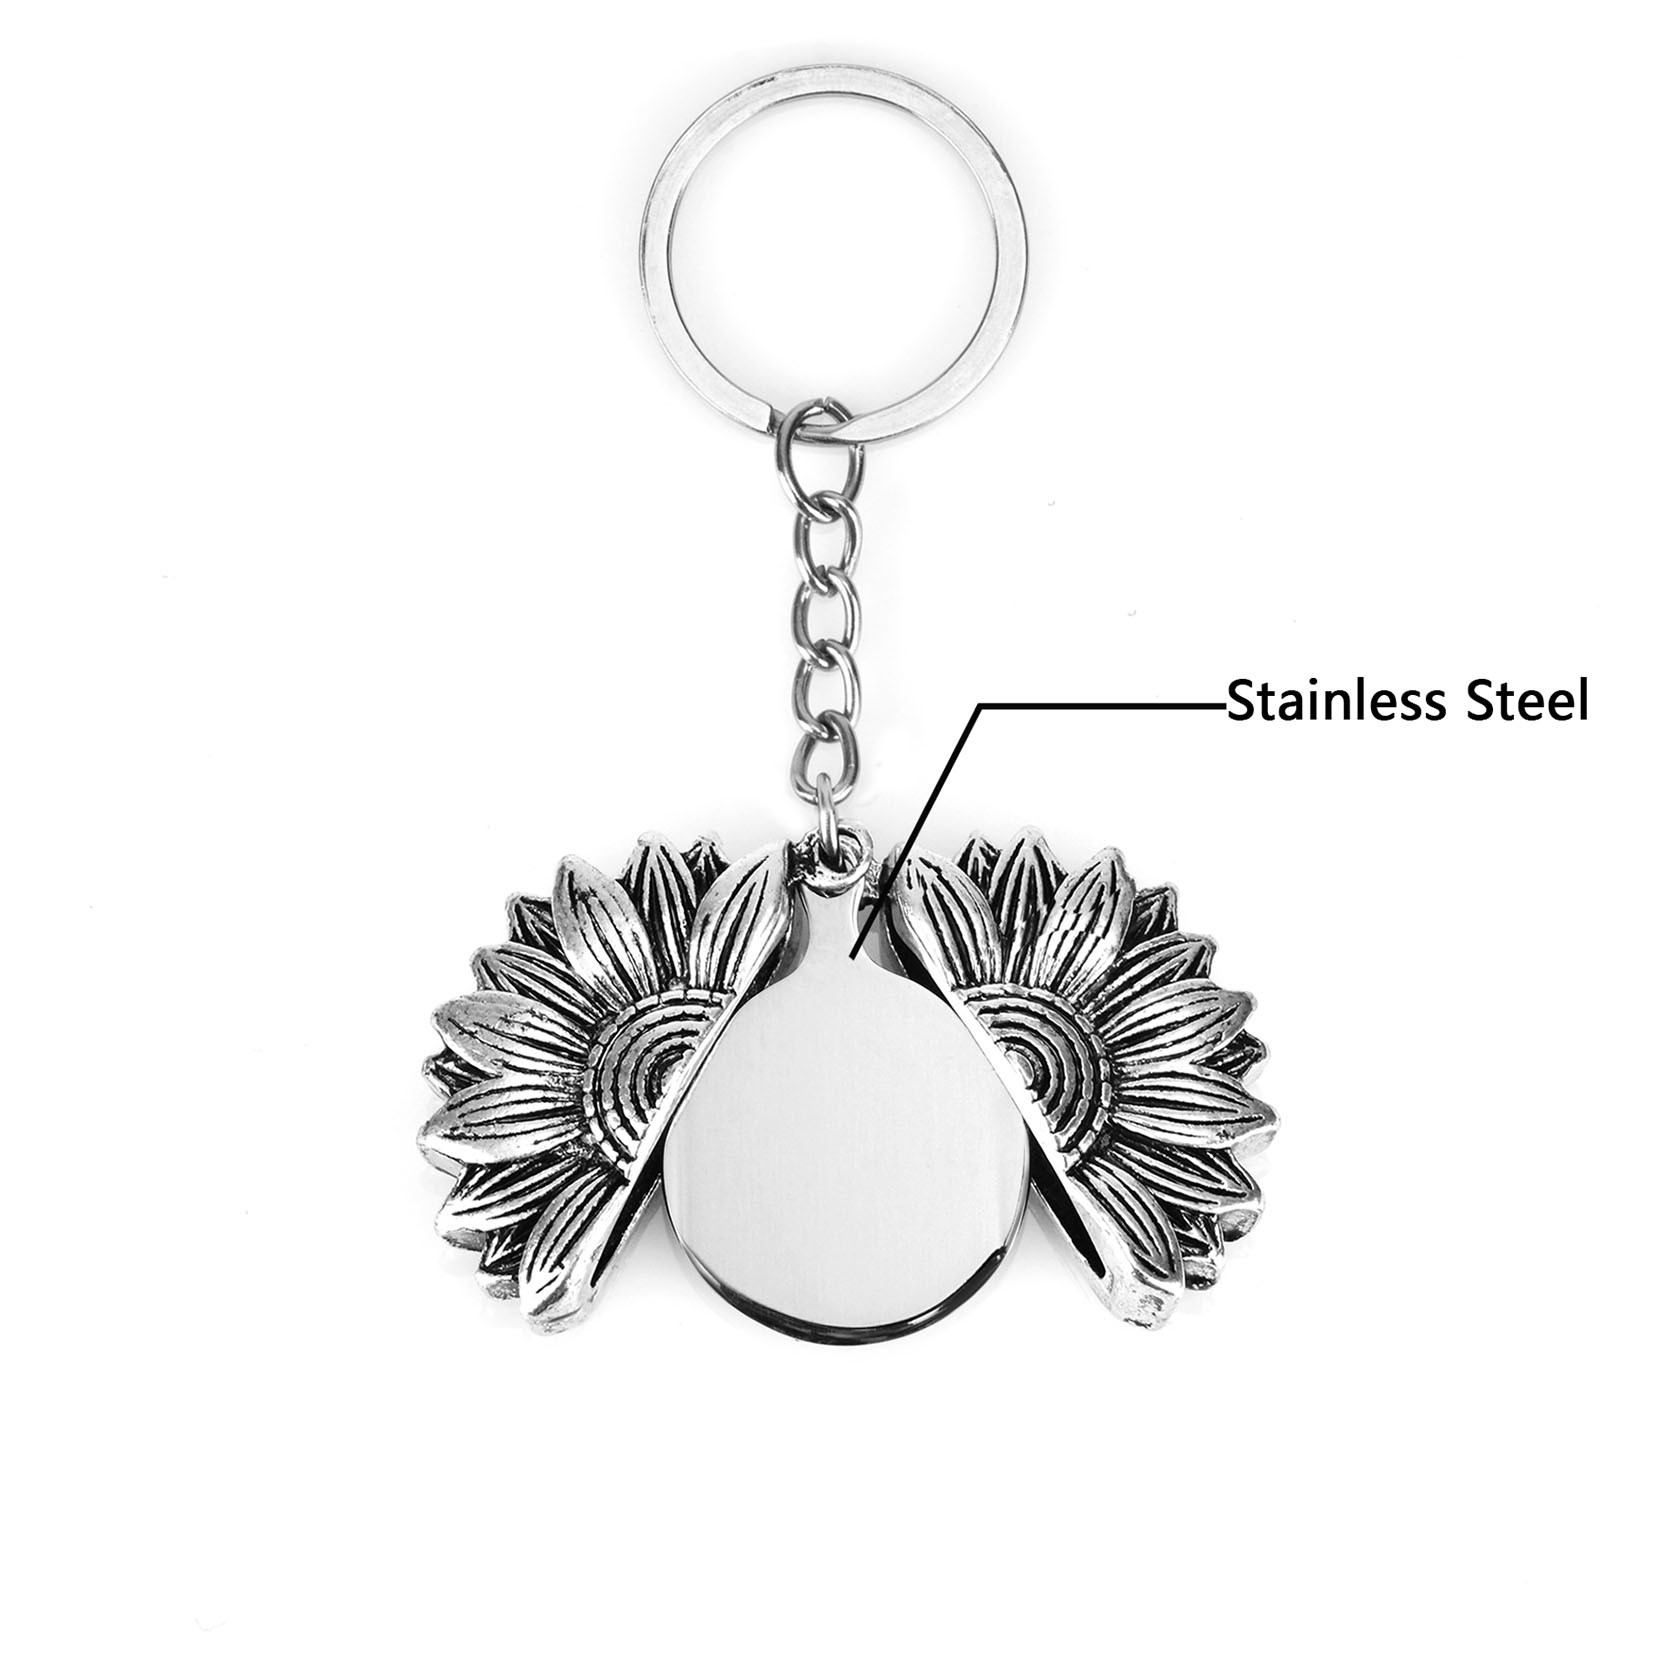 Custom Engraved Name Letters Open Locket Sunflower Keychain With Stainless Steel Personalized Valentine Gift Men Jewelry Keyring